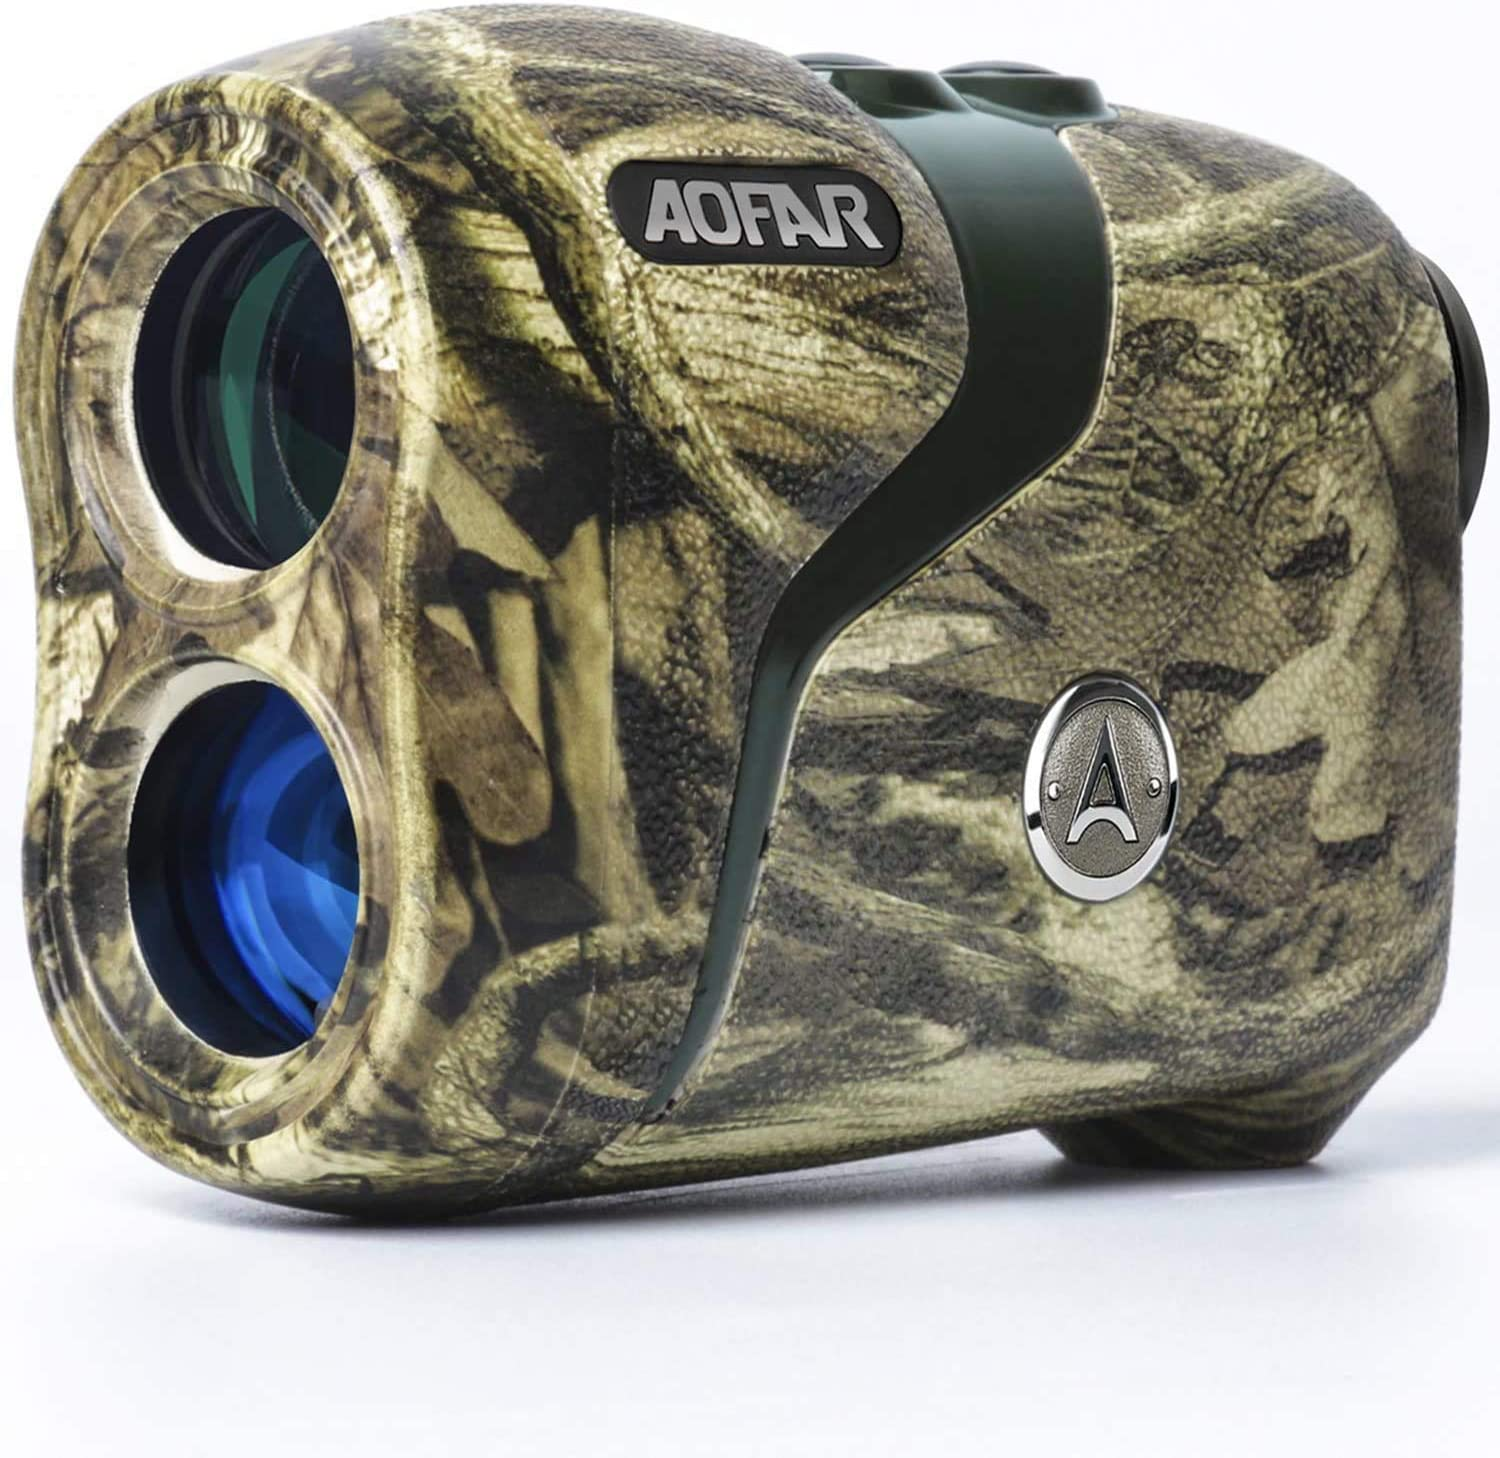 AOFAR H3 Hunting Range Finder 800 Yards, Wild Waterproof Coma Rangefinder for Shooting and Archery with Angle and Horizontal Distance, Range and Bow Mode, Gift Package